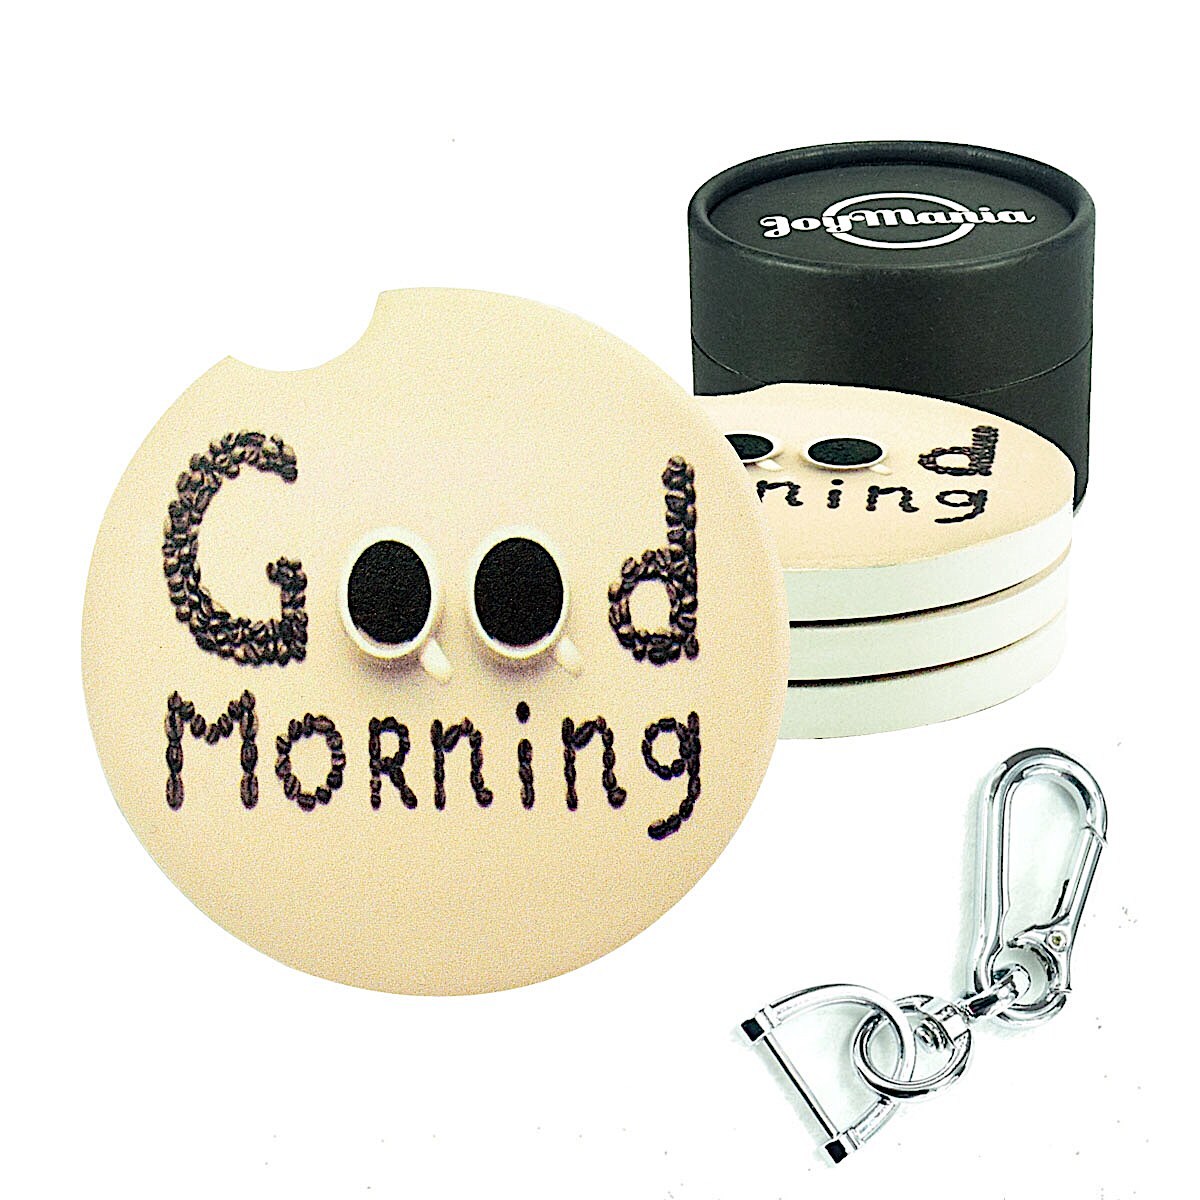 Car coasters 4 pack( Good morning)